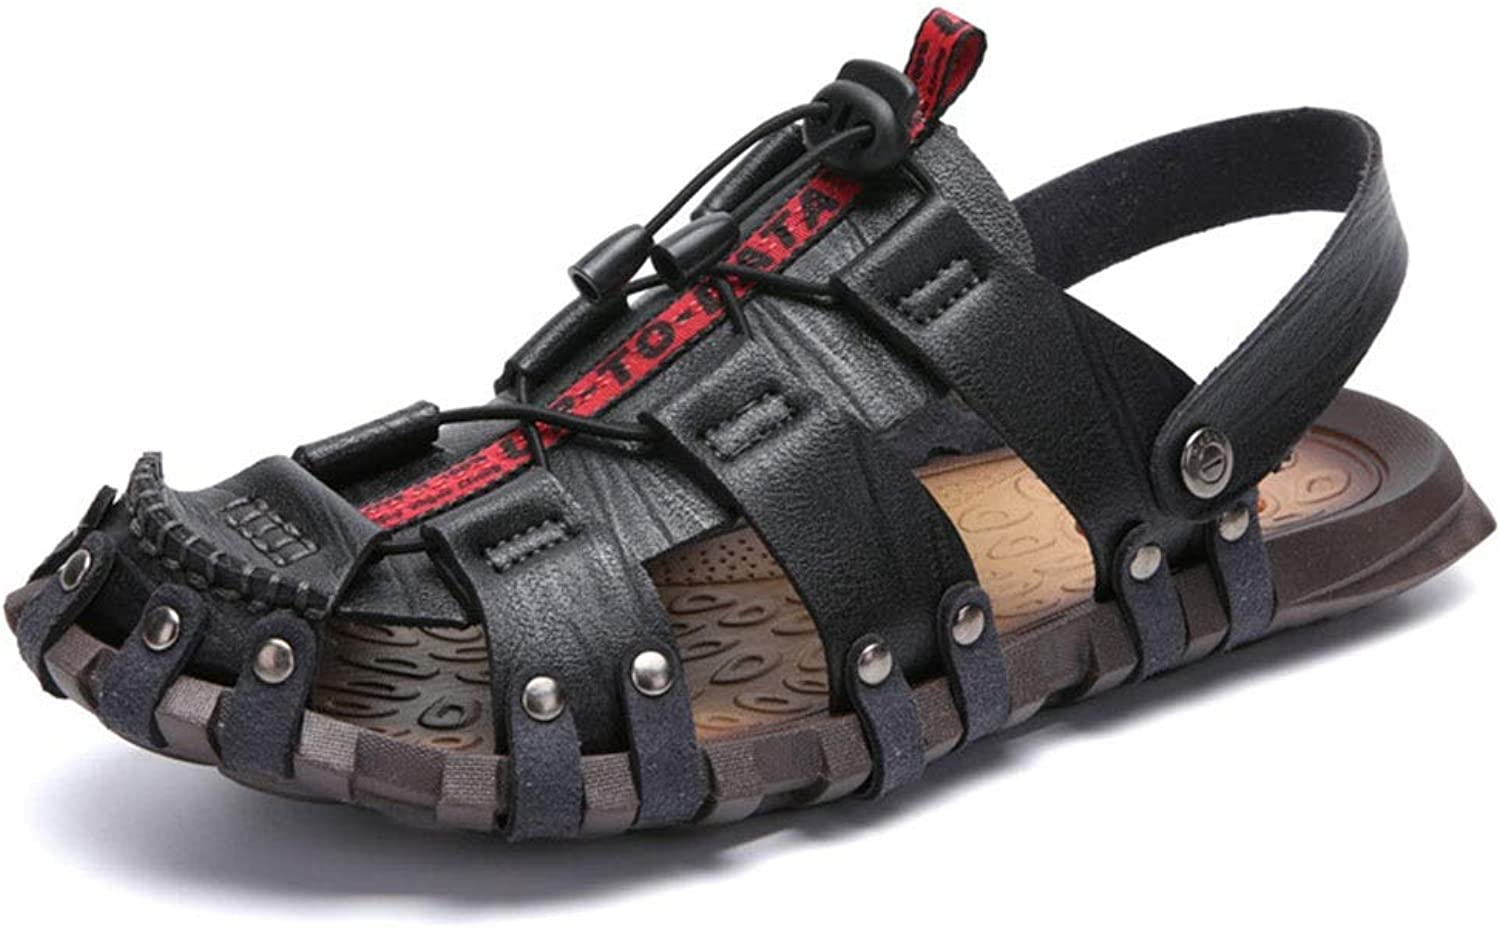 Men's Sandals, Breathable and Non-Slip, Prevent Foot Odor, Outdoor Walking shoes (color   Black, Size   38)